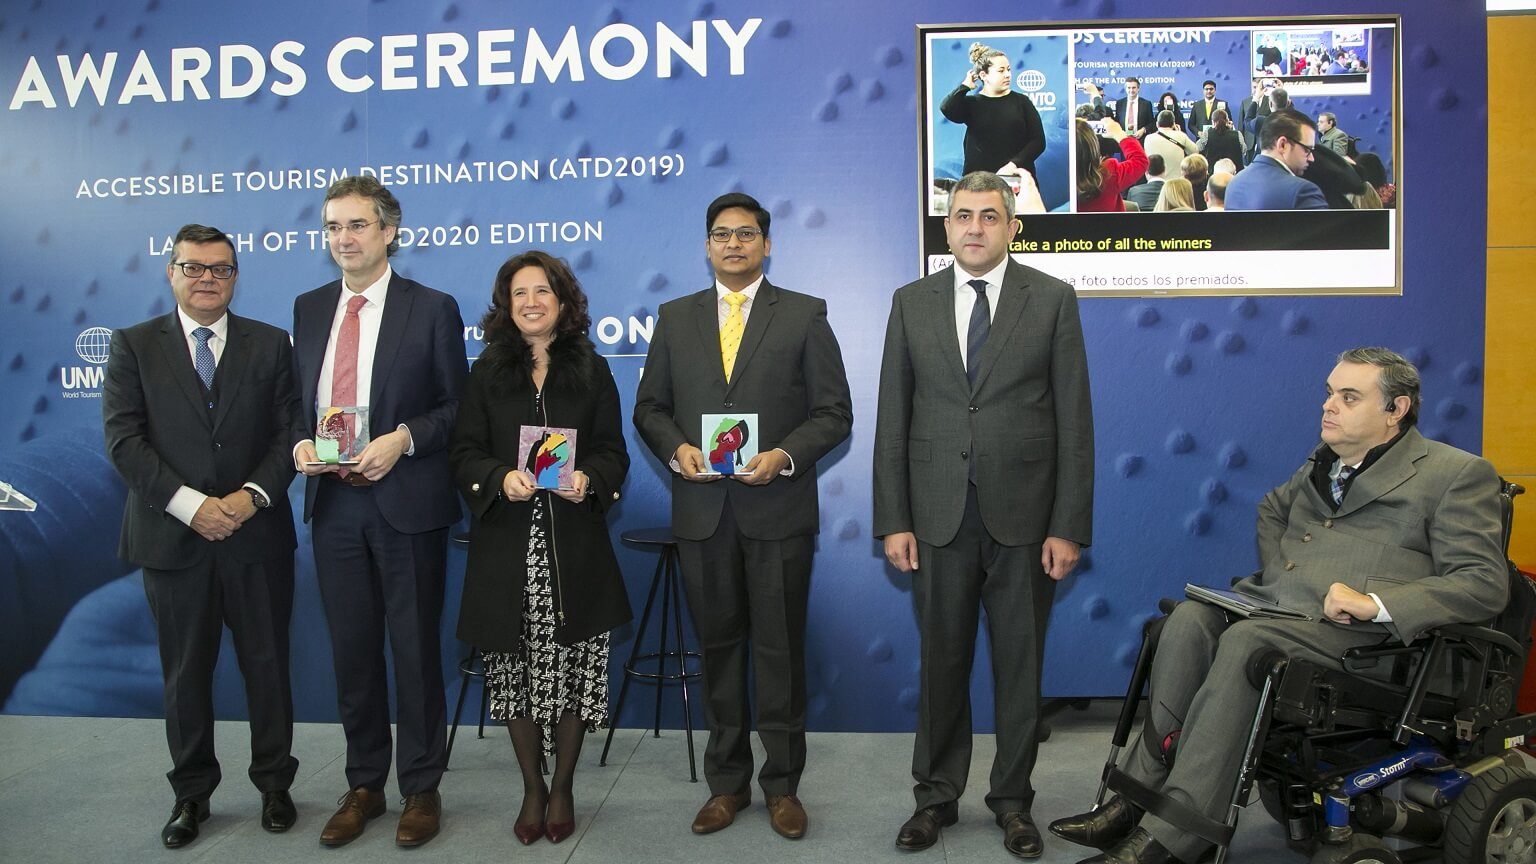 UNWTO recognizes 'Accessible Tourist Destinations' at FITUR